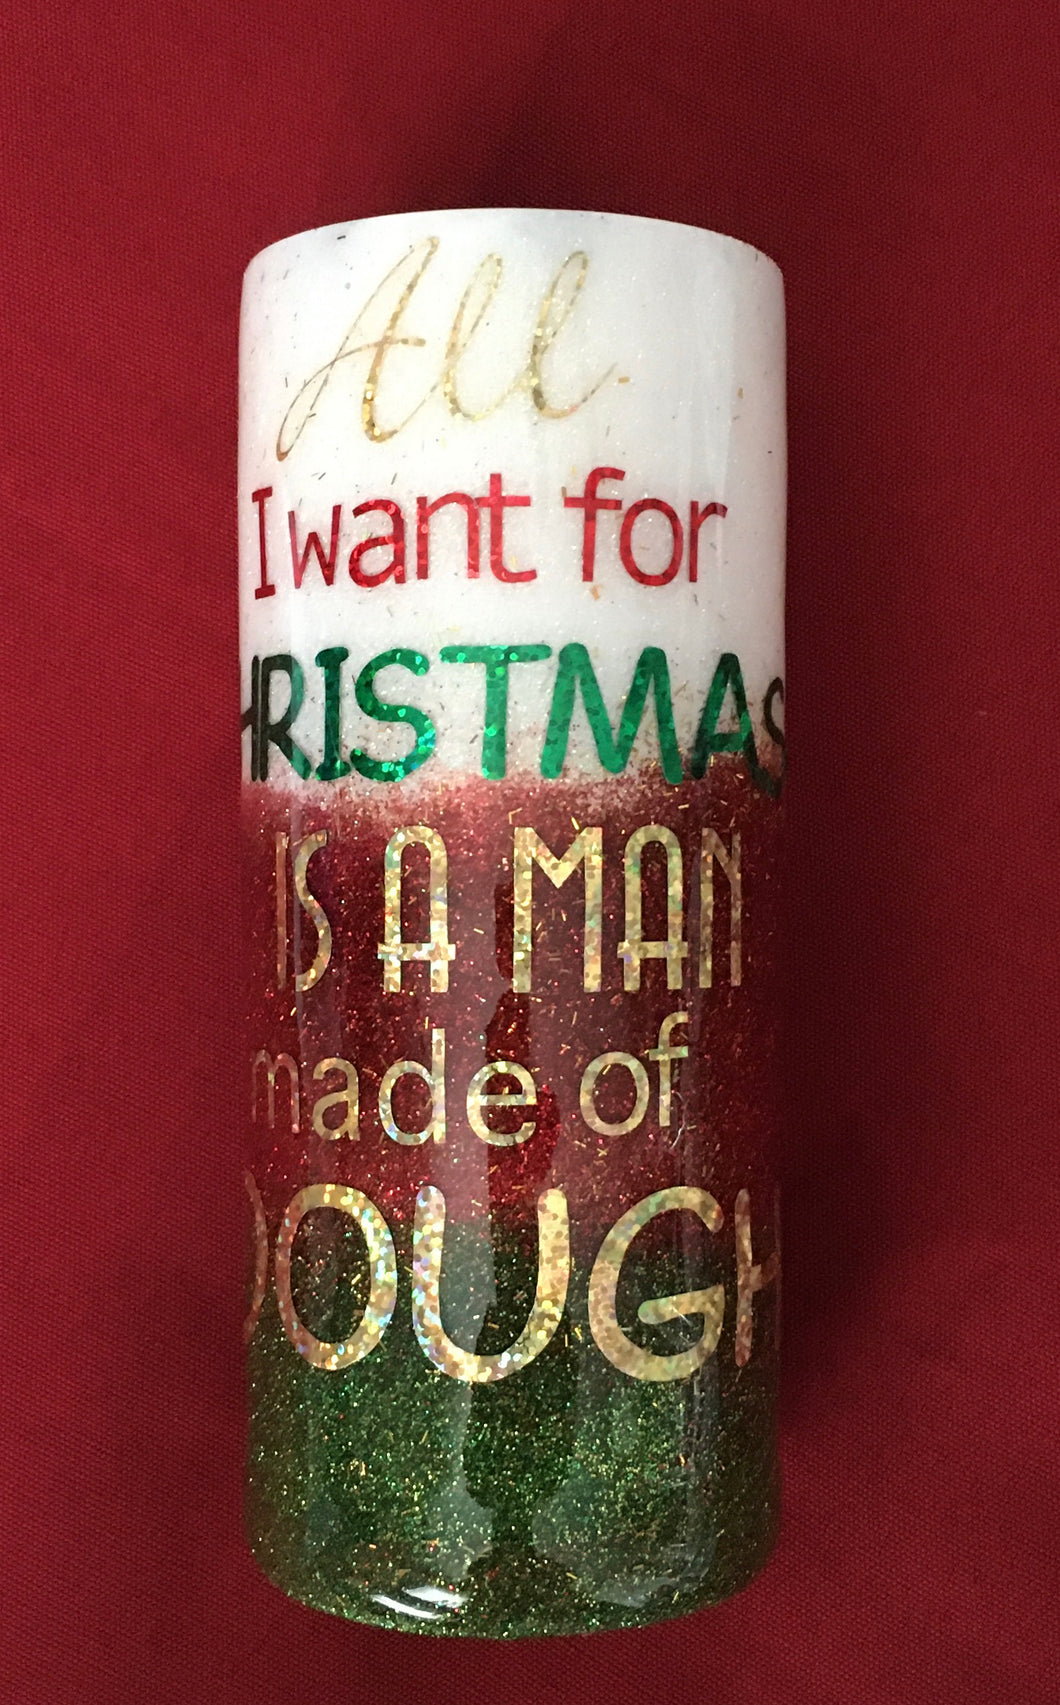 All I want for Christmas is a Man made of Dough